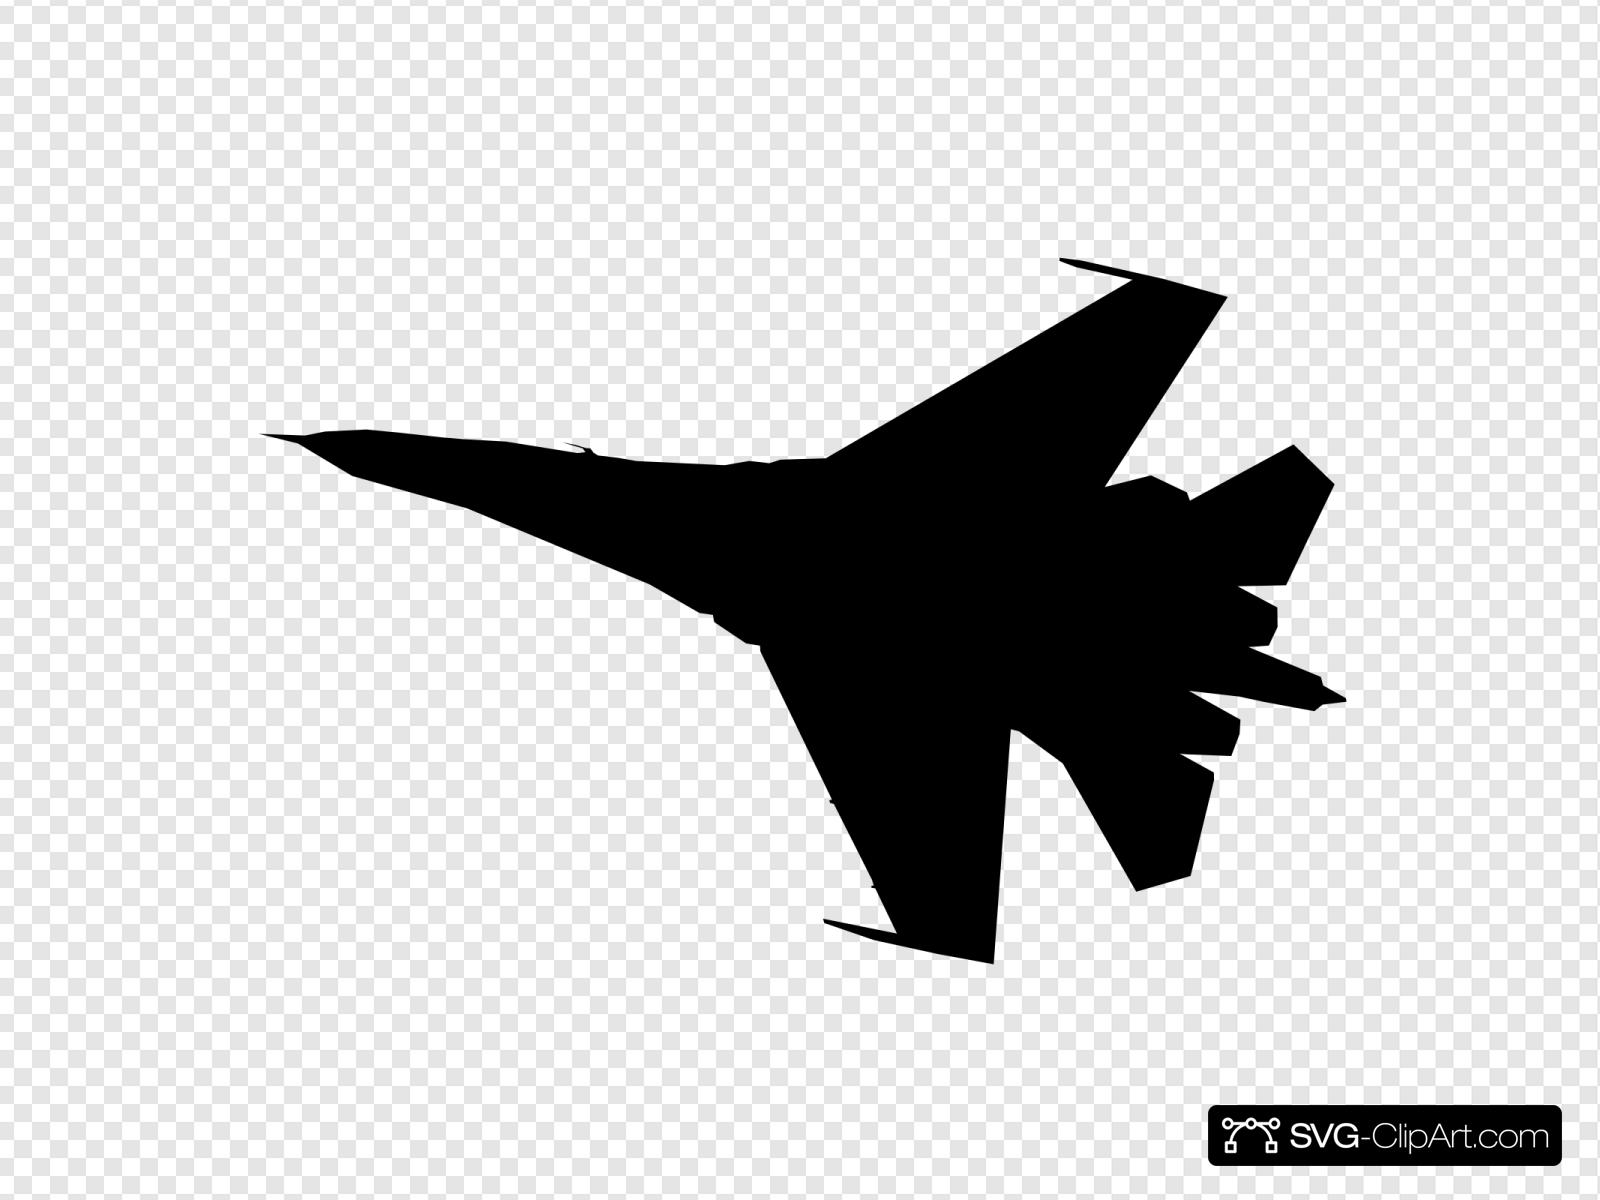 Airplane Fighter Silhouette Svg Vector Airplane Fighter